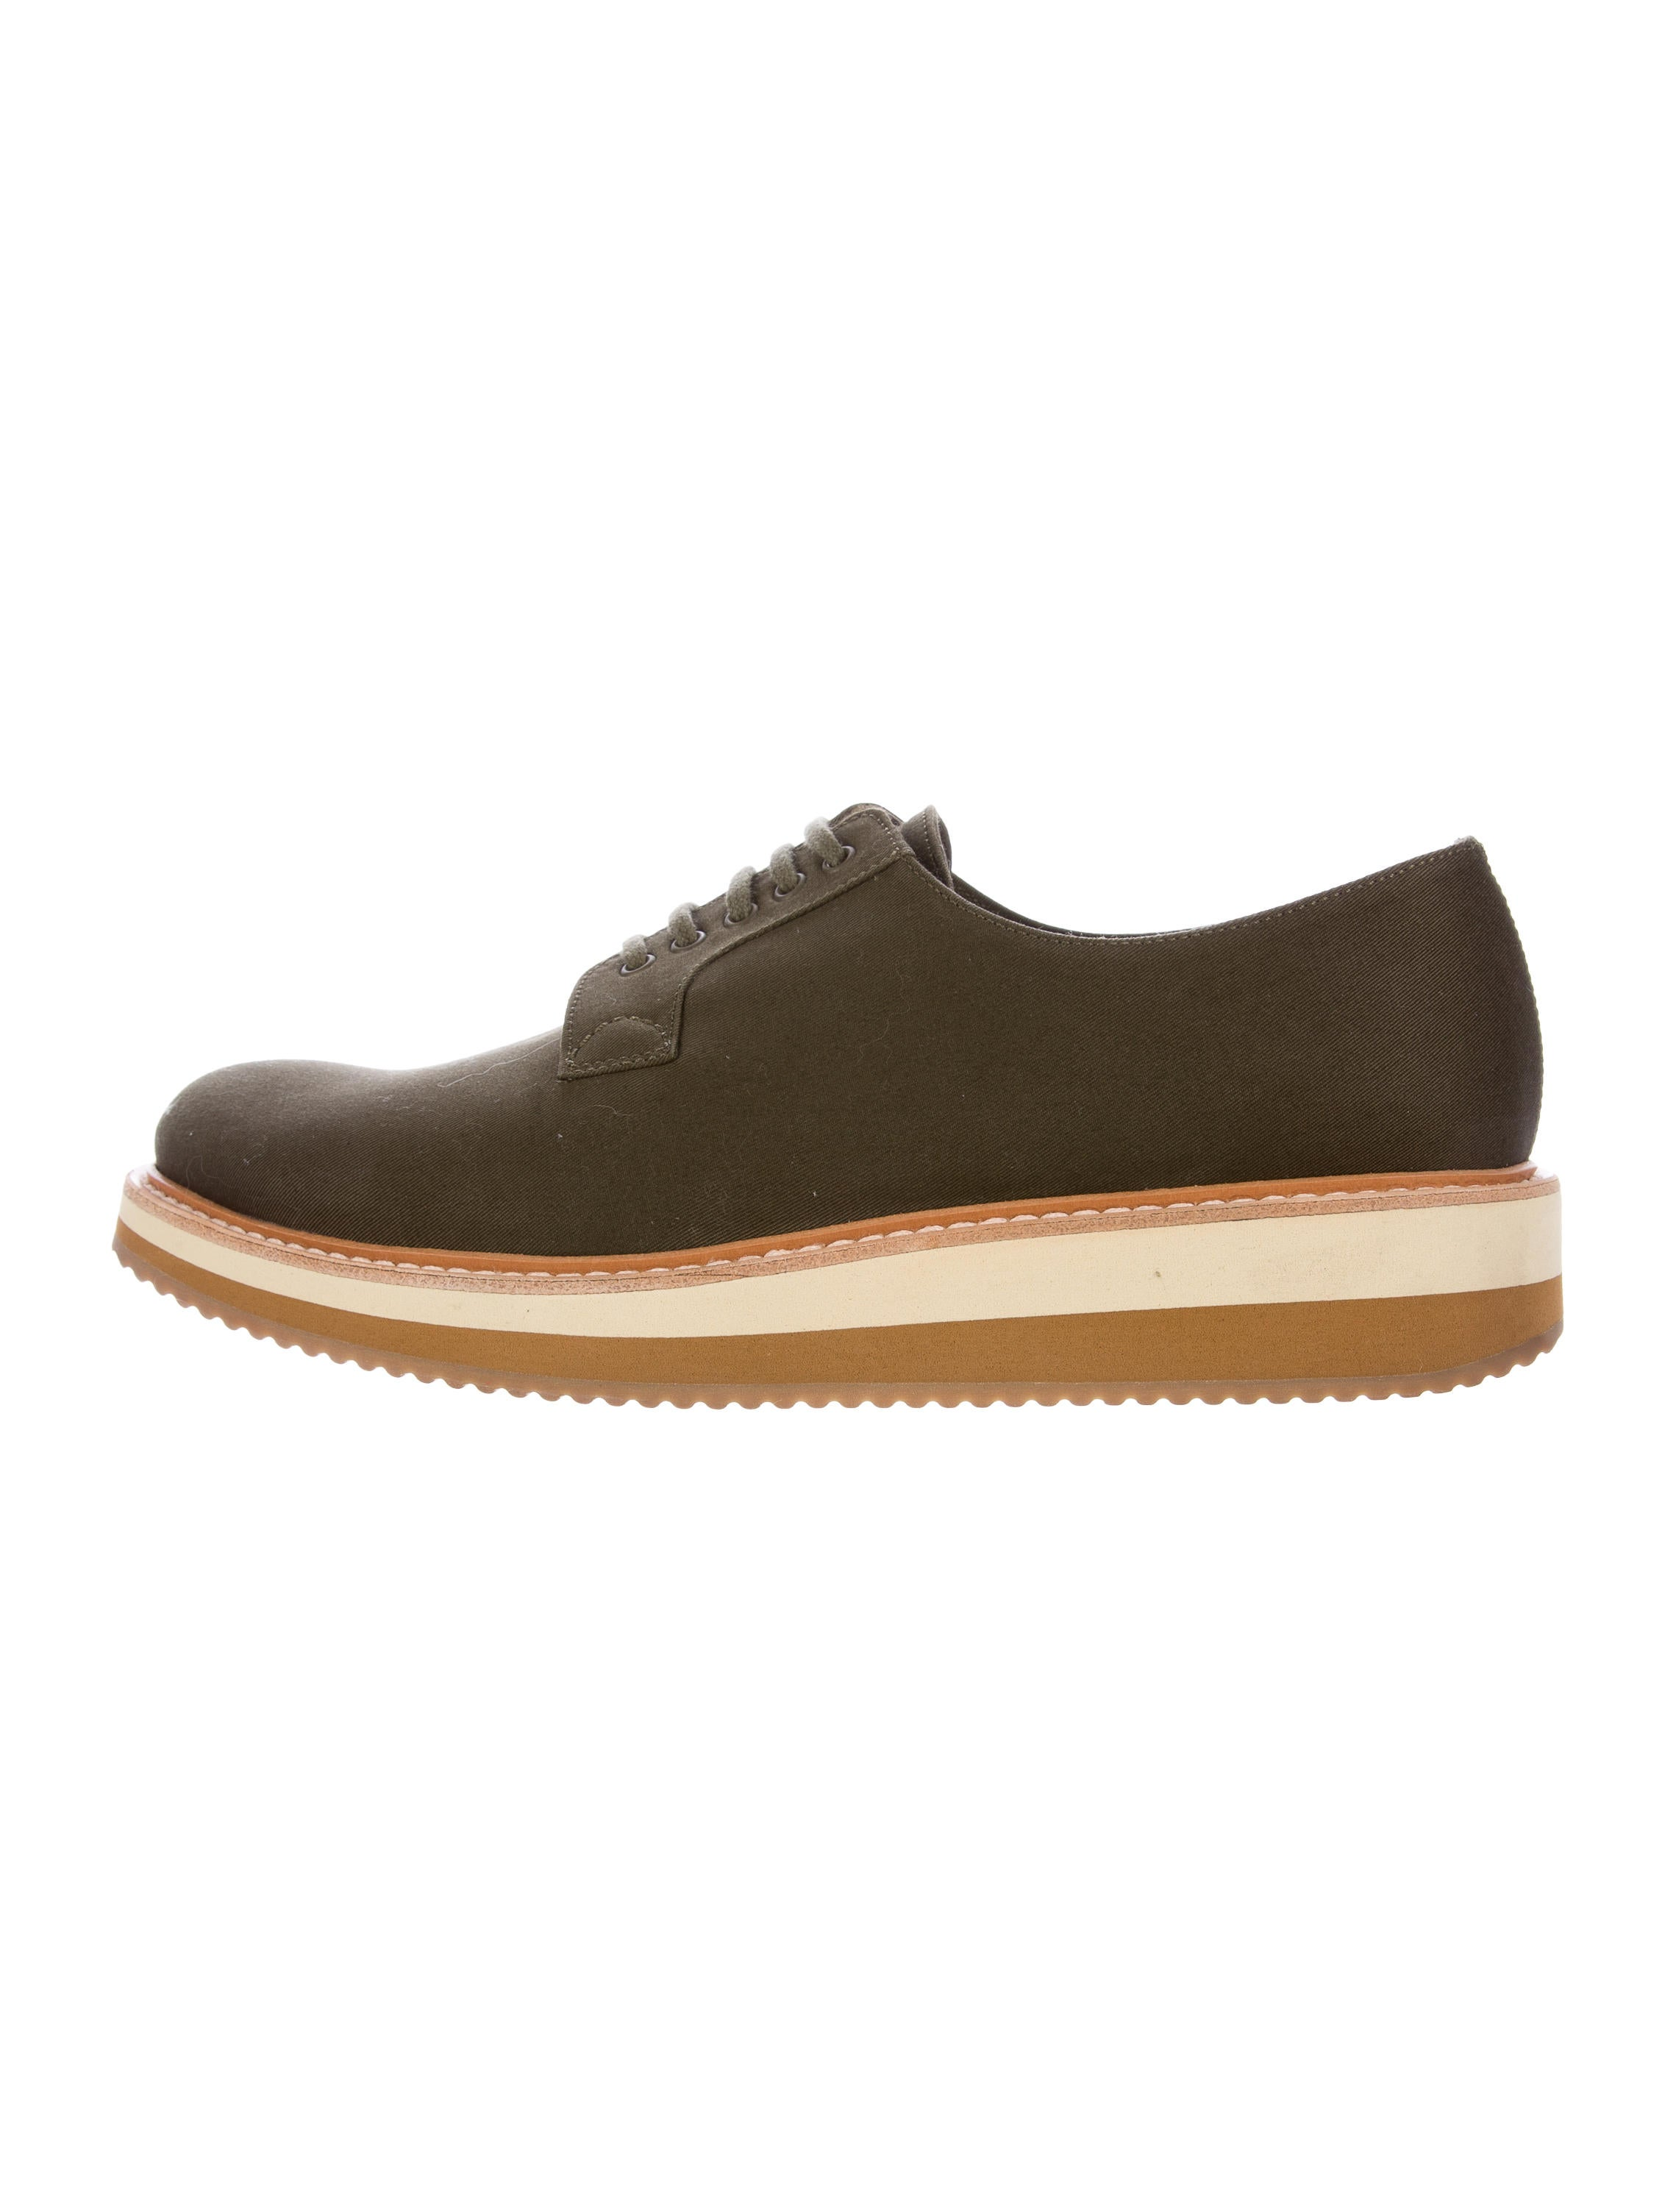 prada wedge sole derby shoes shoes pra139859 the